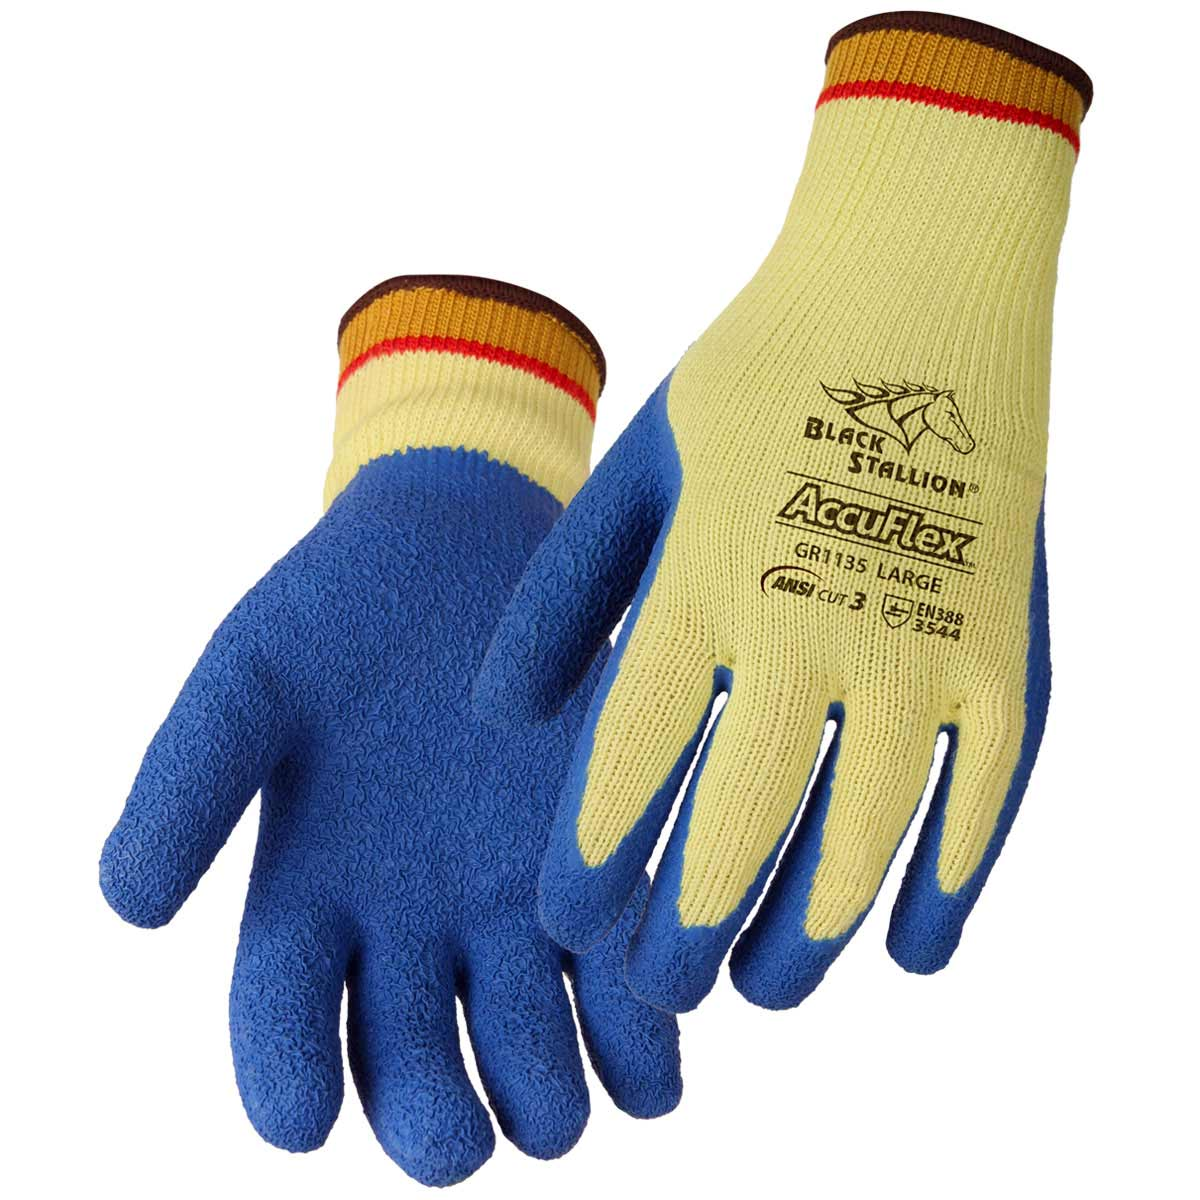 CUT RESISTANT LATEX COATED KEVLAR GLOVES. Pack 12. X Large. GR1135-YL-XLG